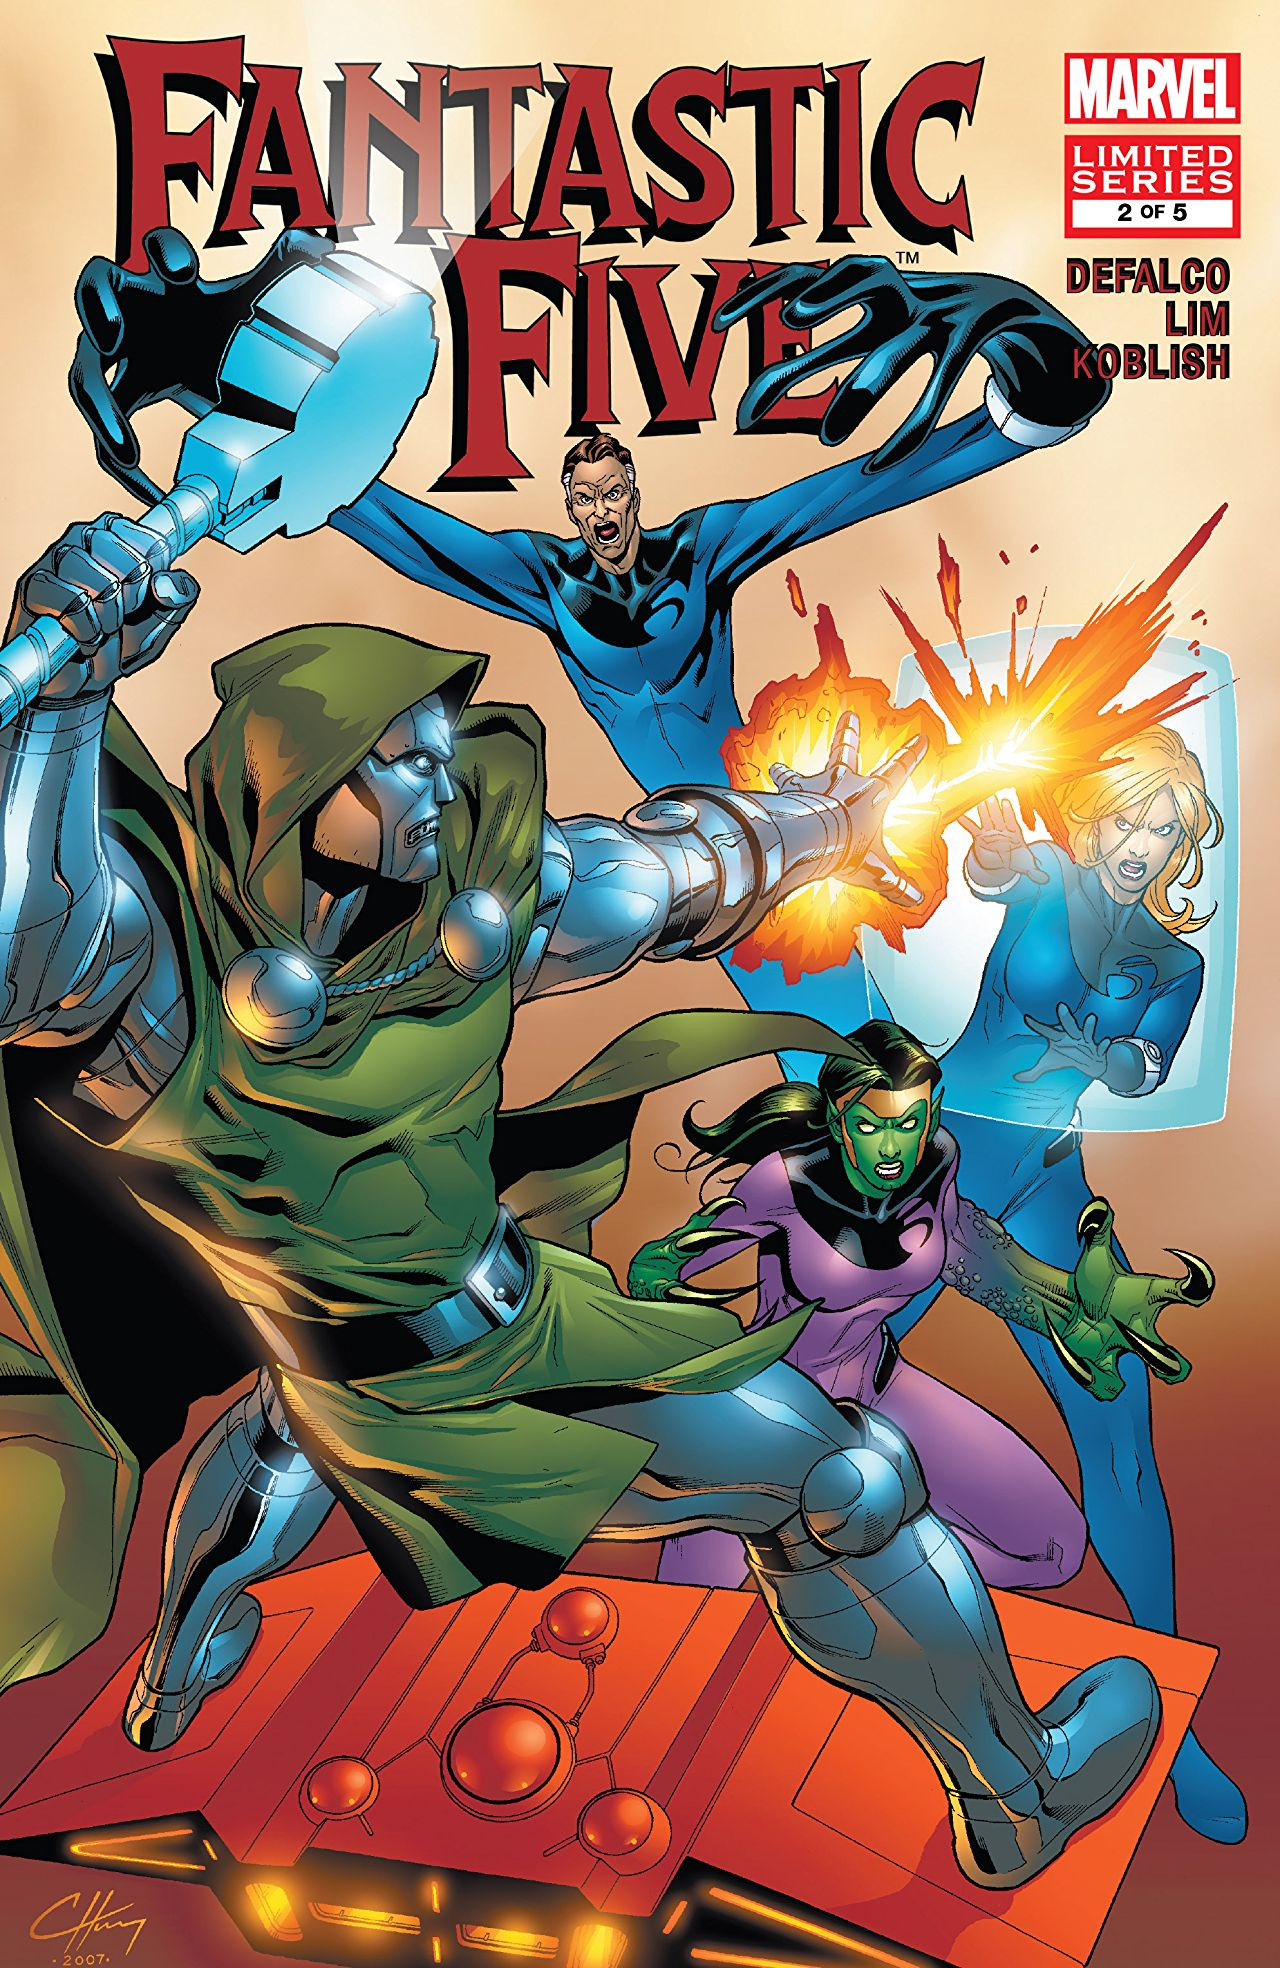 Fantastic Five Vol 2 2